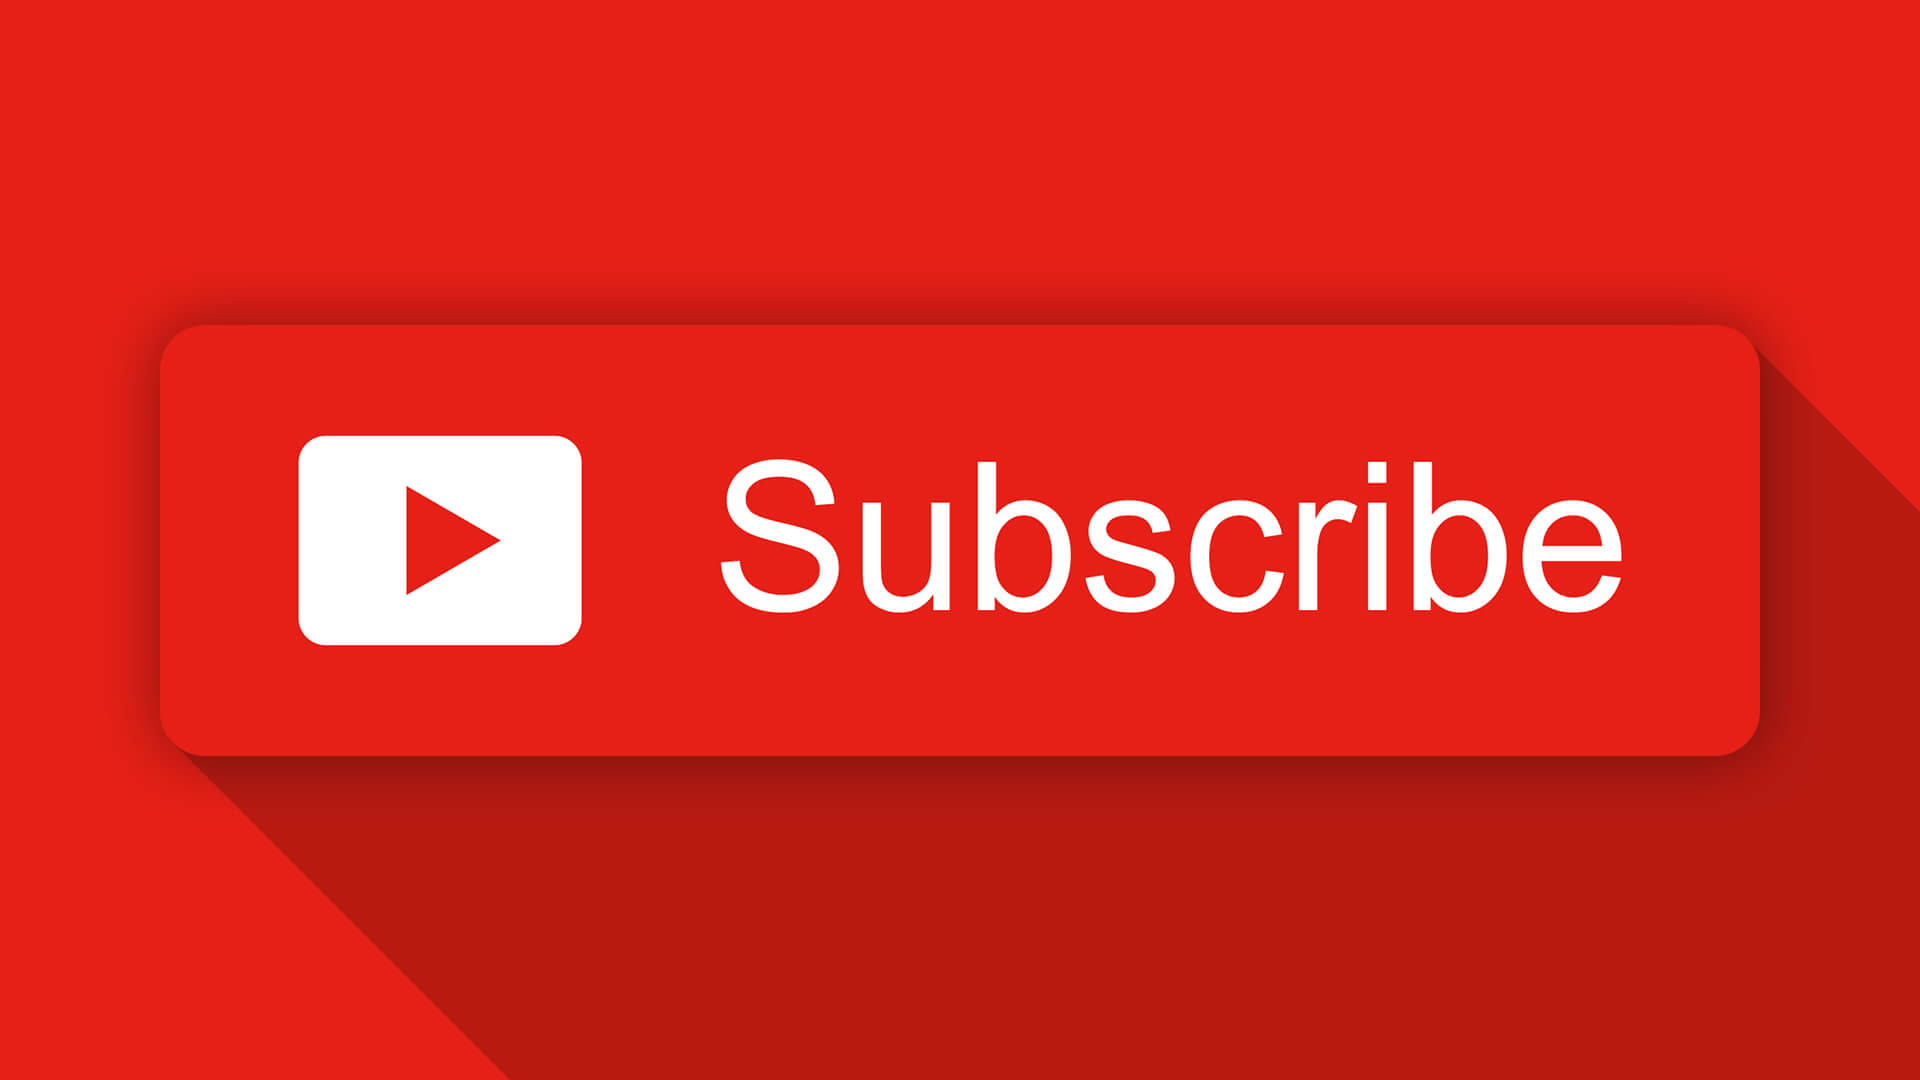 Free-YouTube-Subscribe-Button-Download-Design-Inspiration-By-AlfredoCreates-1